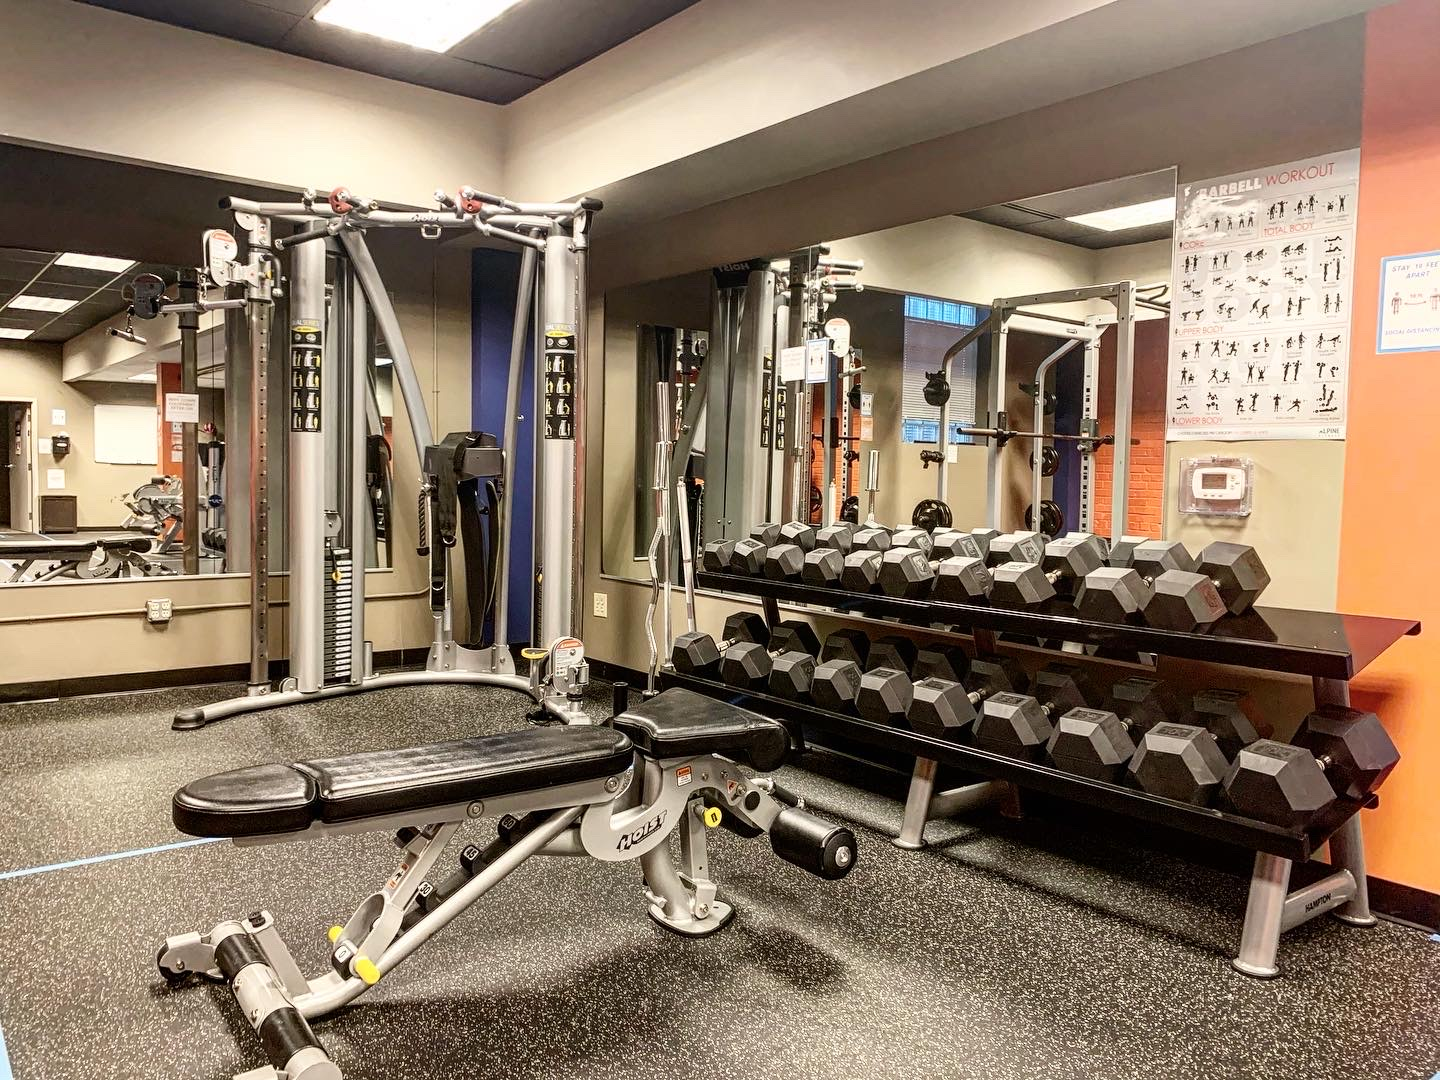 Cable equipment and dumbbells